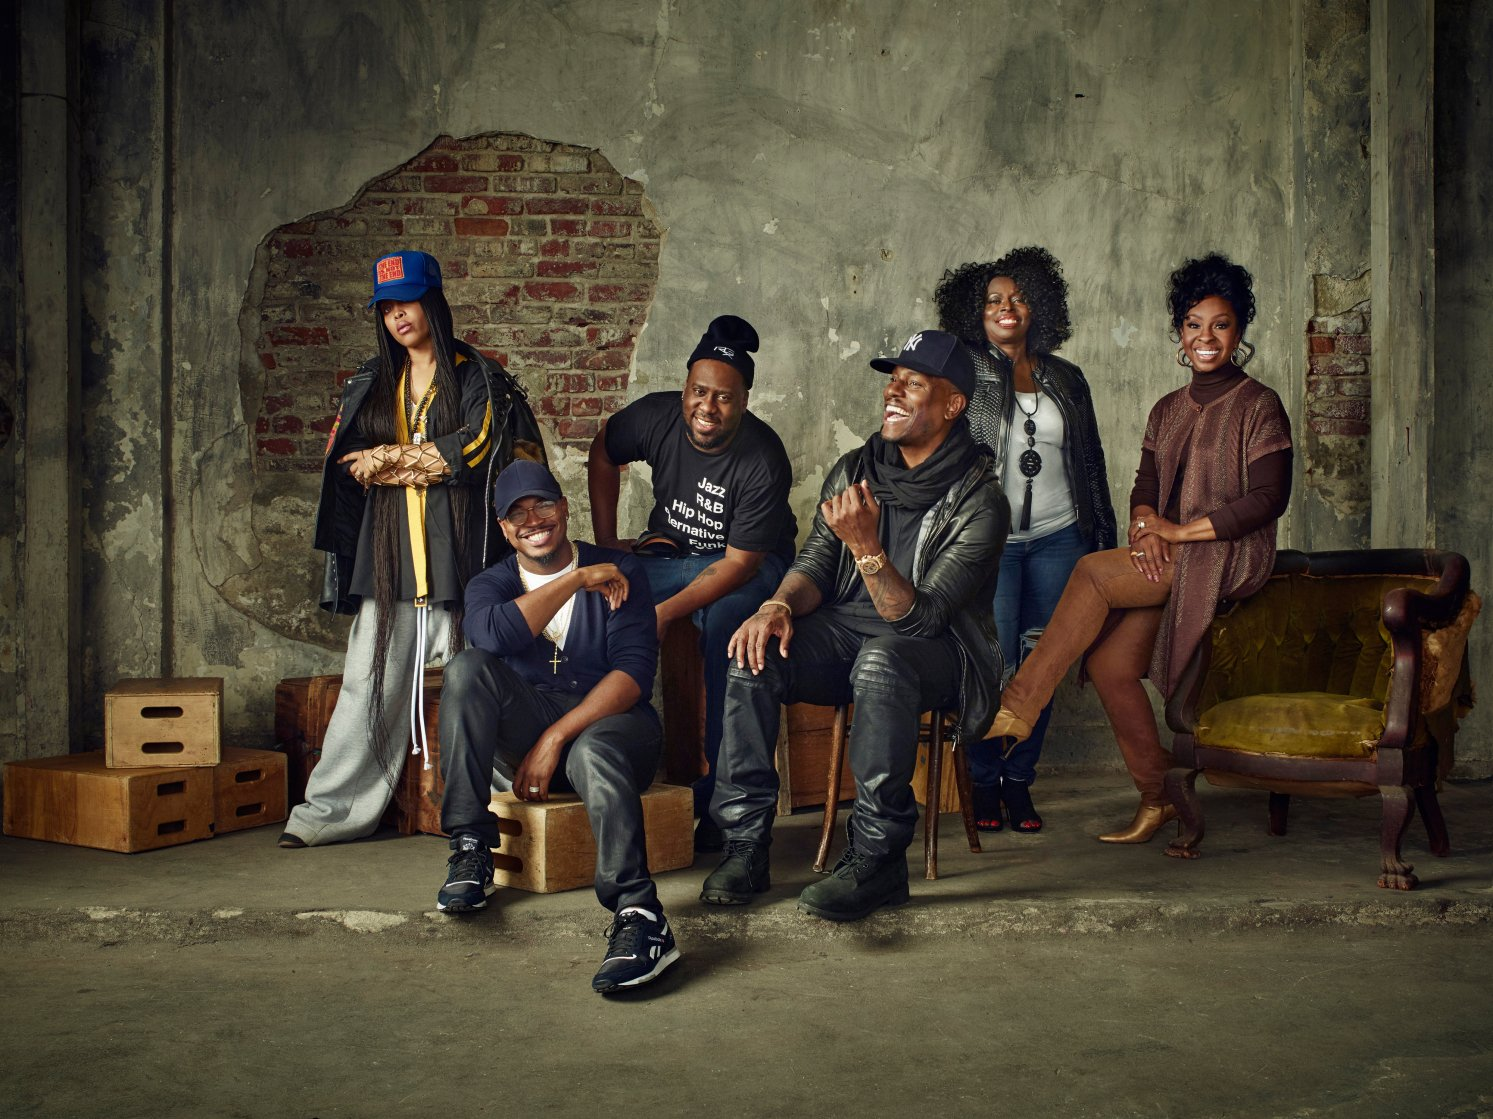 Watch the 'Soul Cypher' with @fatbellybella, @NeYoCompound, @Tyrese, @MsGladysKnight: https://t.co/yaQLRclD2p https://t.co/iyTkhQaC5Y